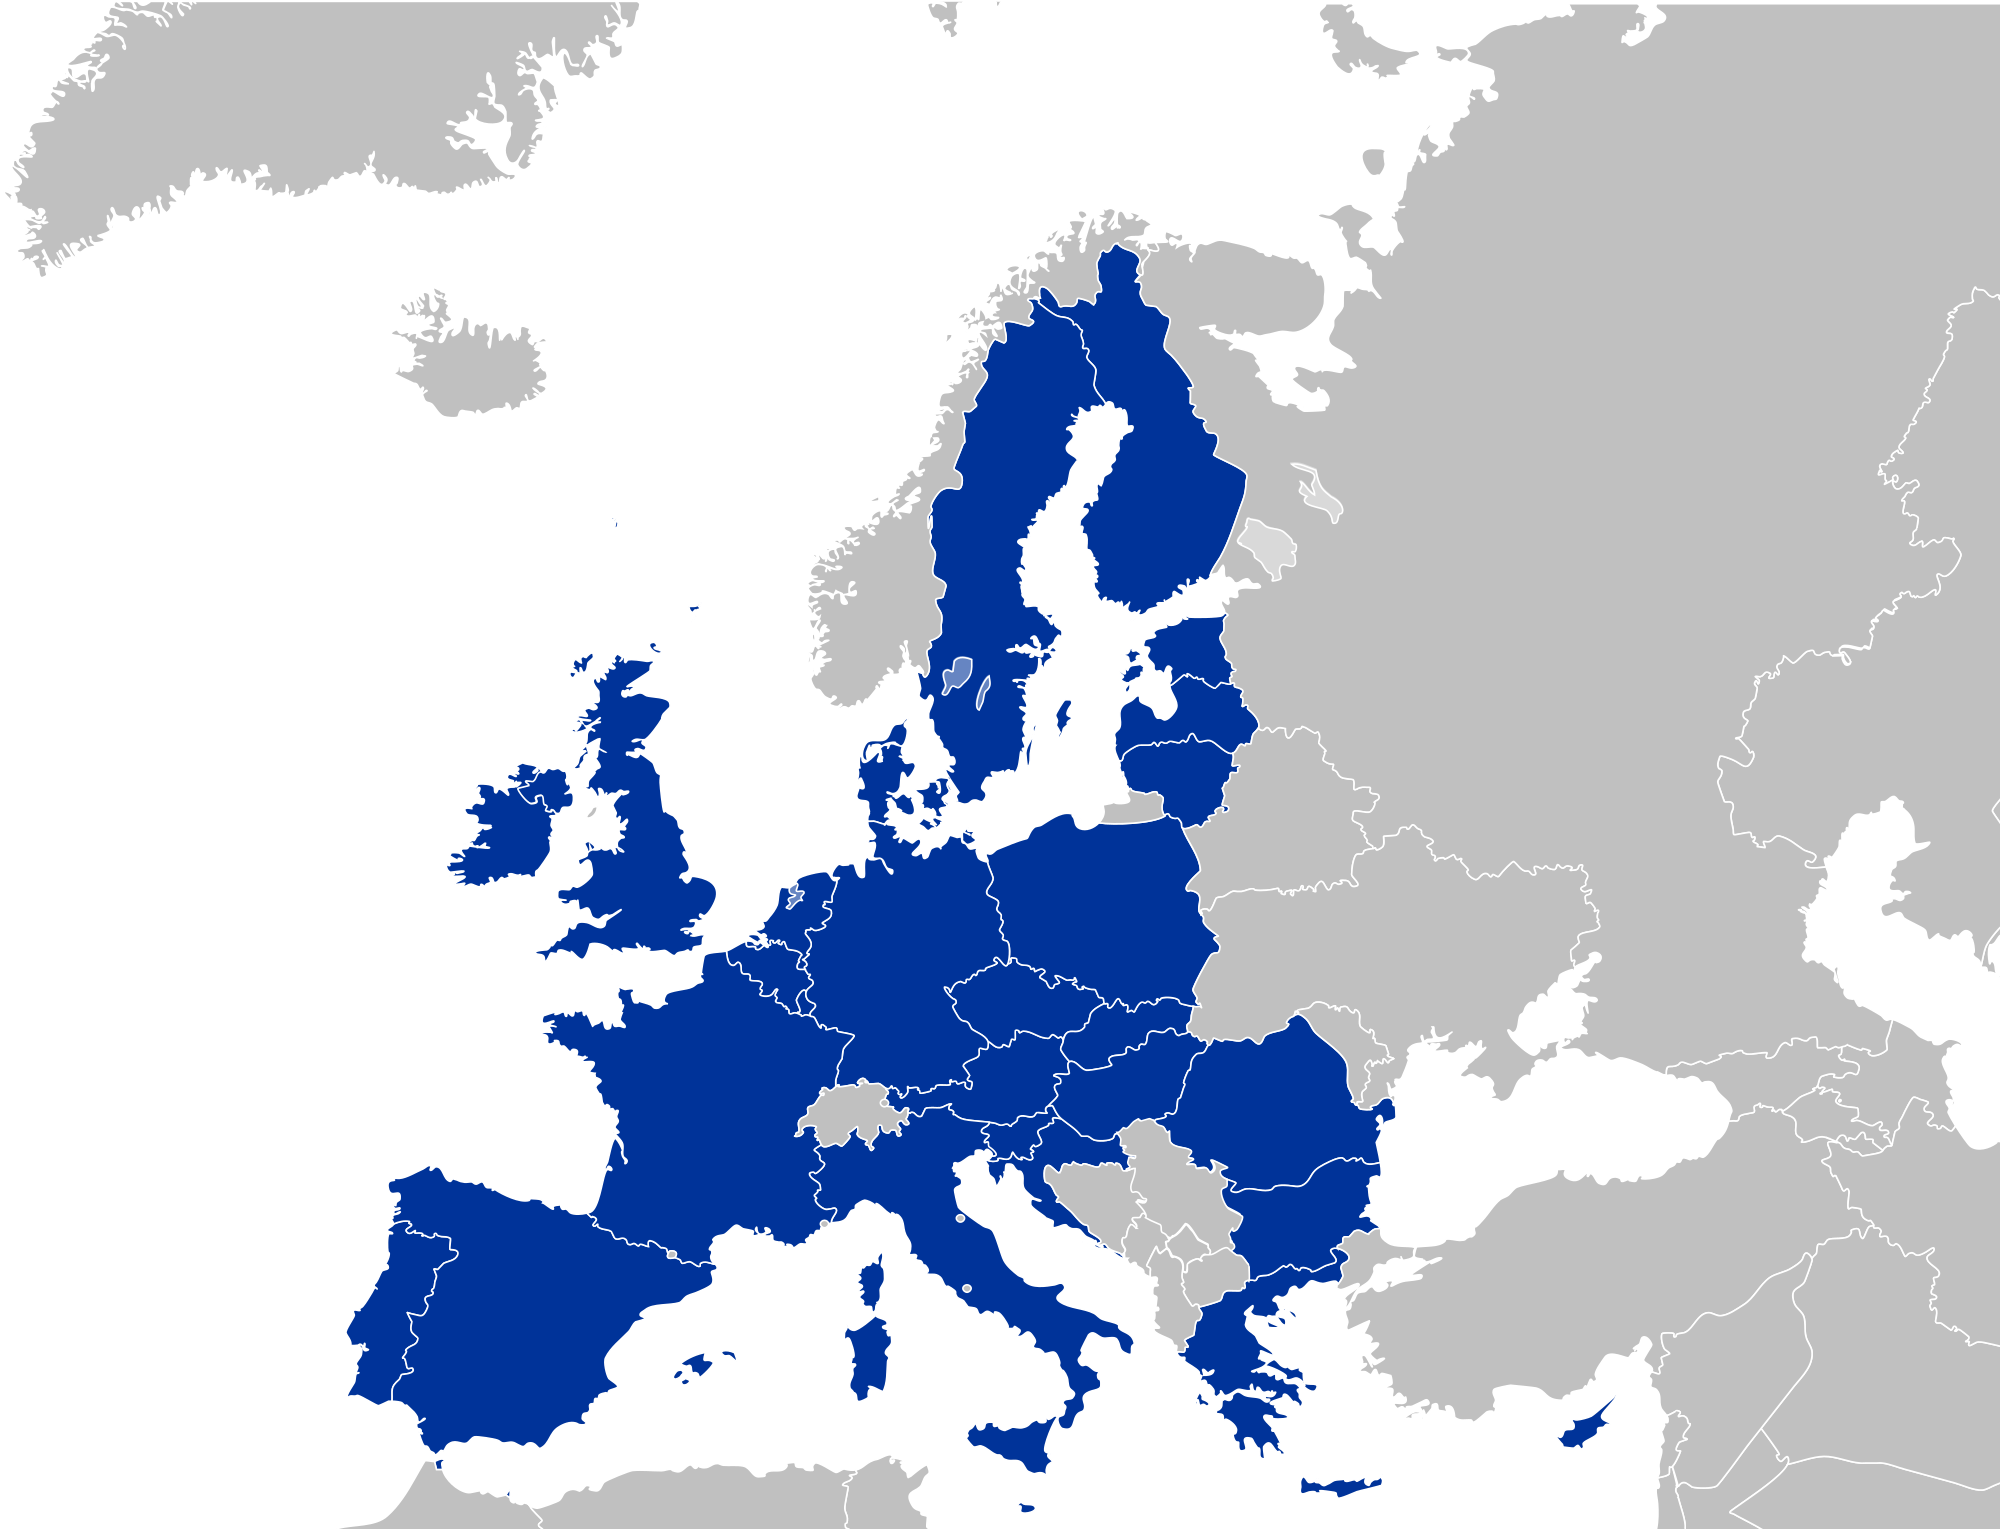 Europe clipart political map. Atlas of wikimedia commons